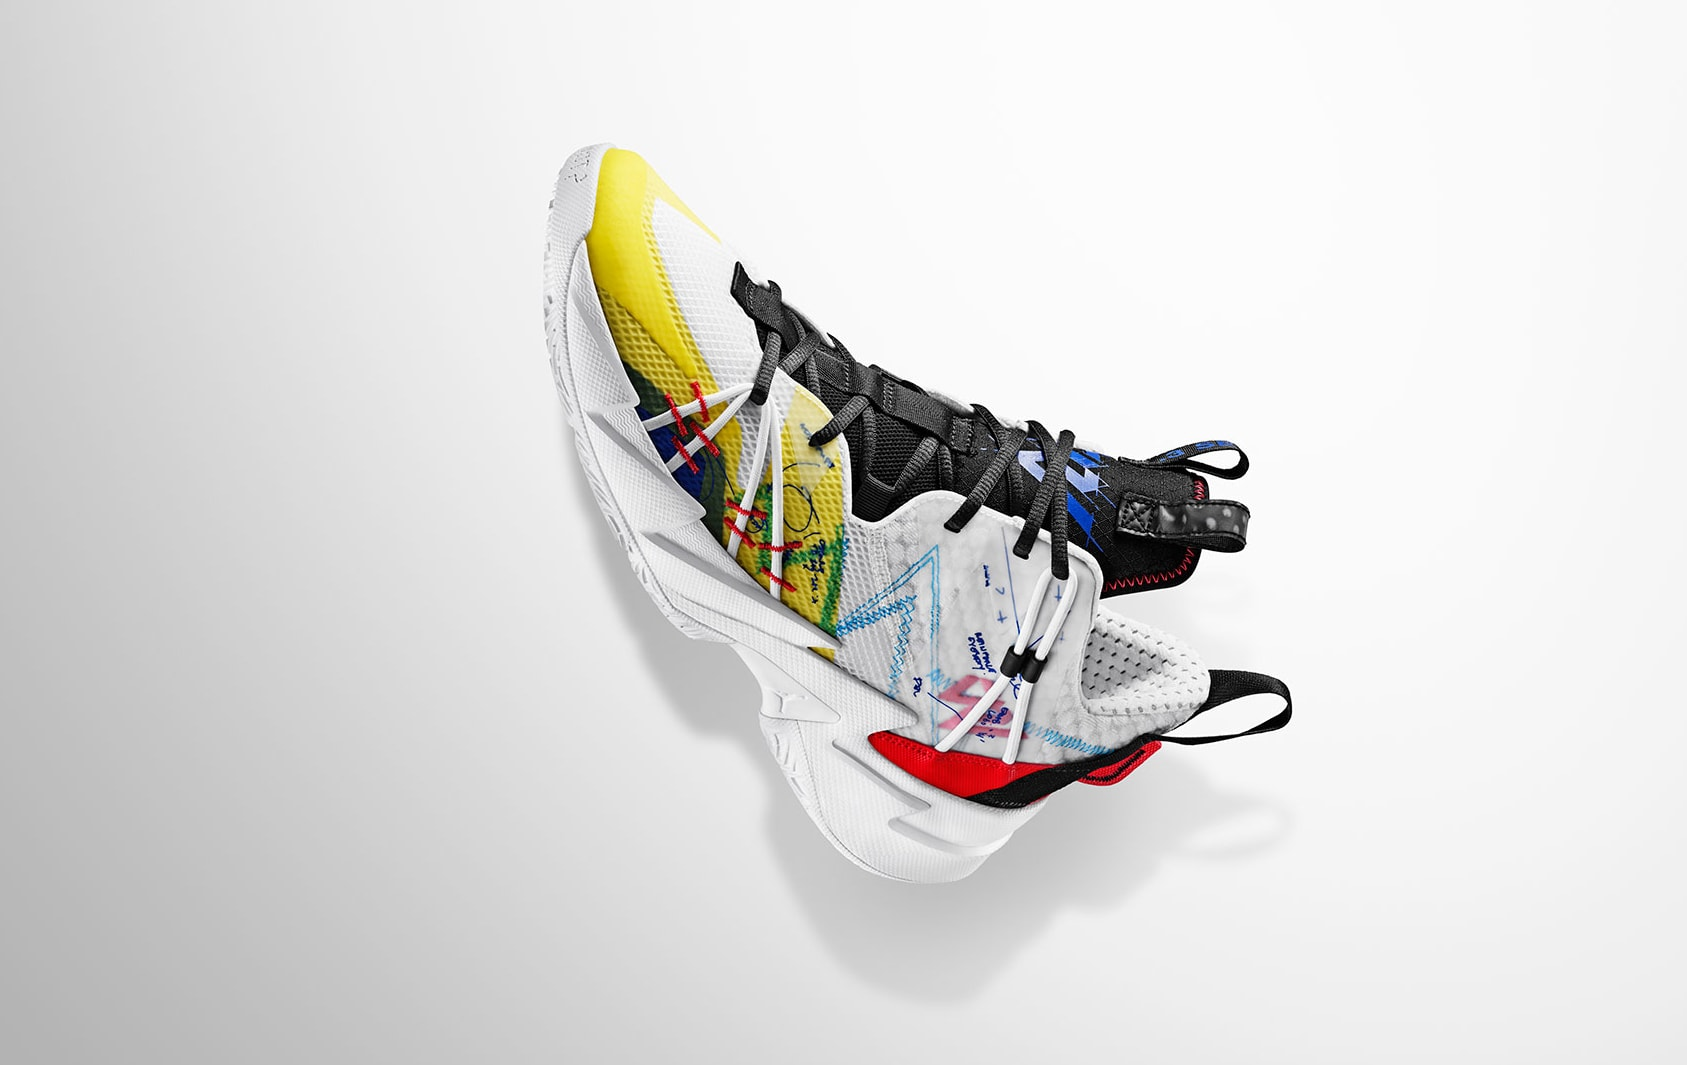 Jordan Why Not Zer0.3 SE 'Primary Colors' Lateral